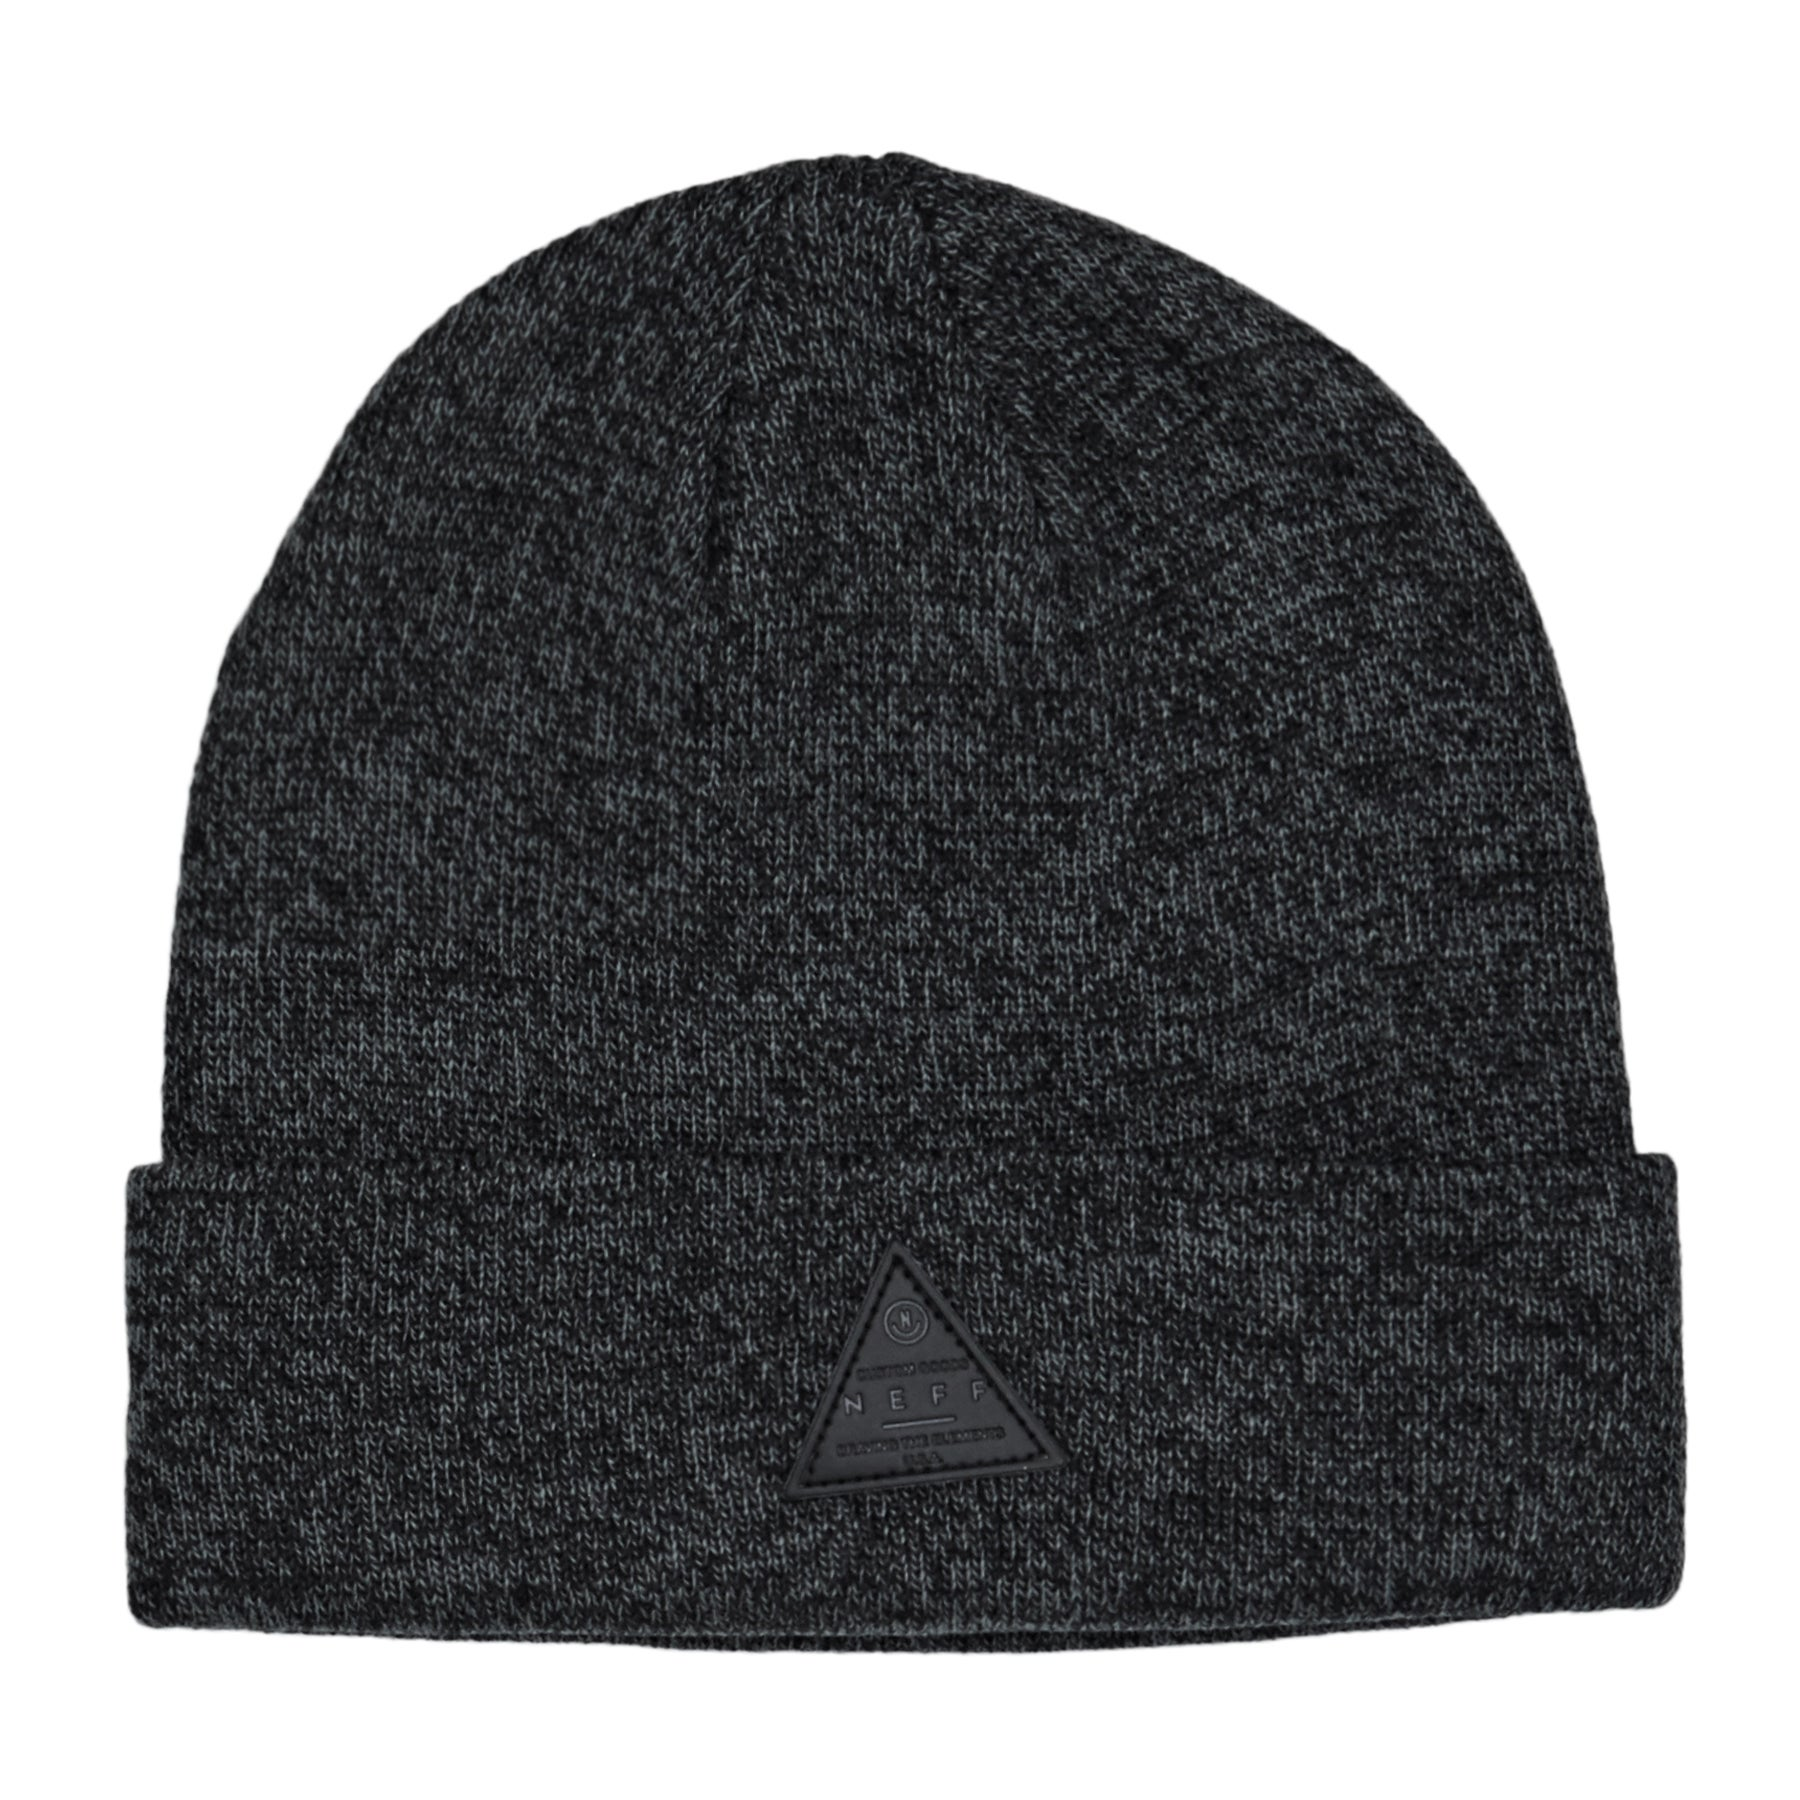 Berretto Neff DWR x - Black/Charcoal